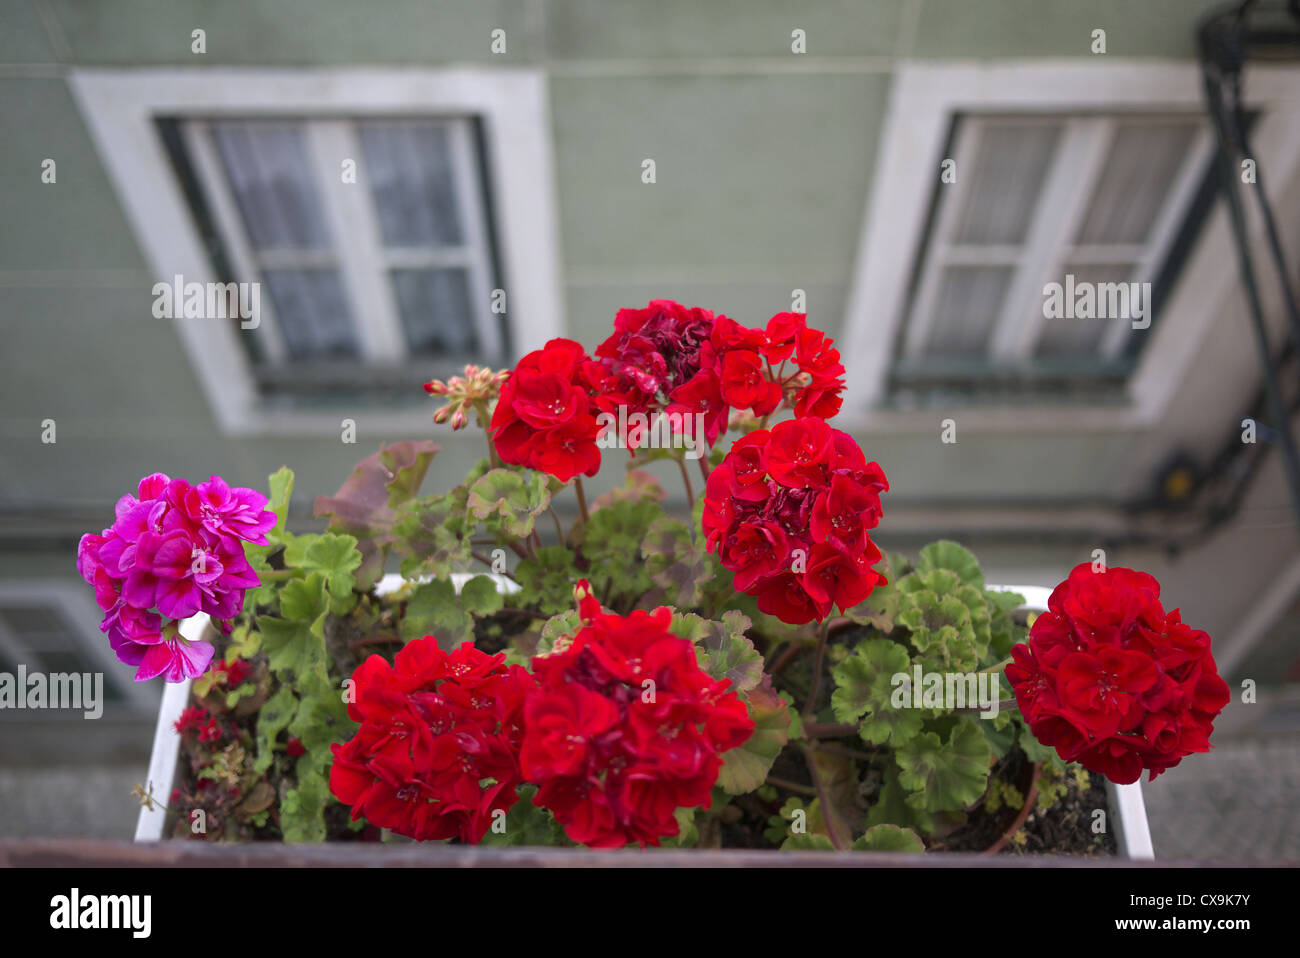 Window box containing Geraniums. - Stock Image